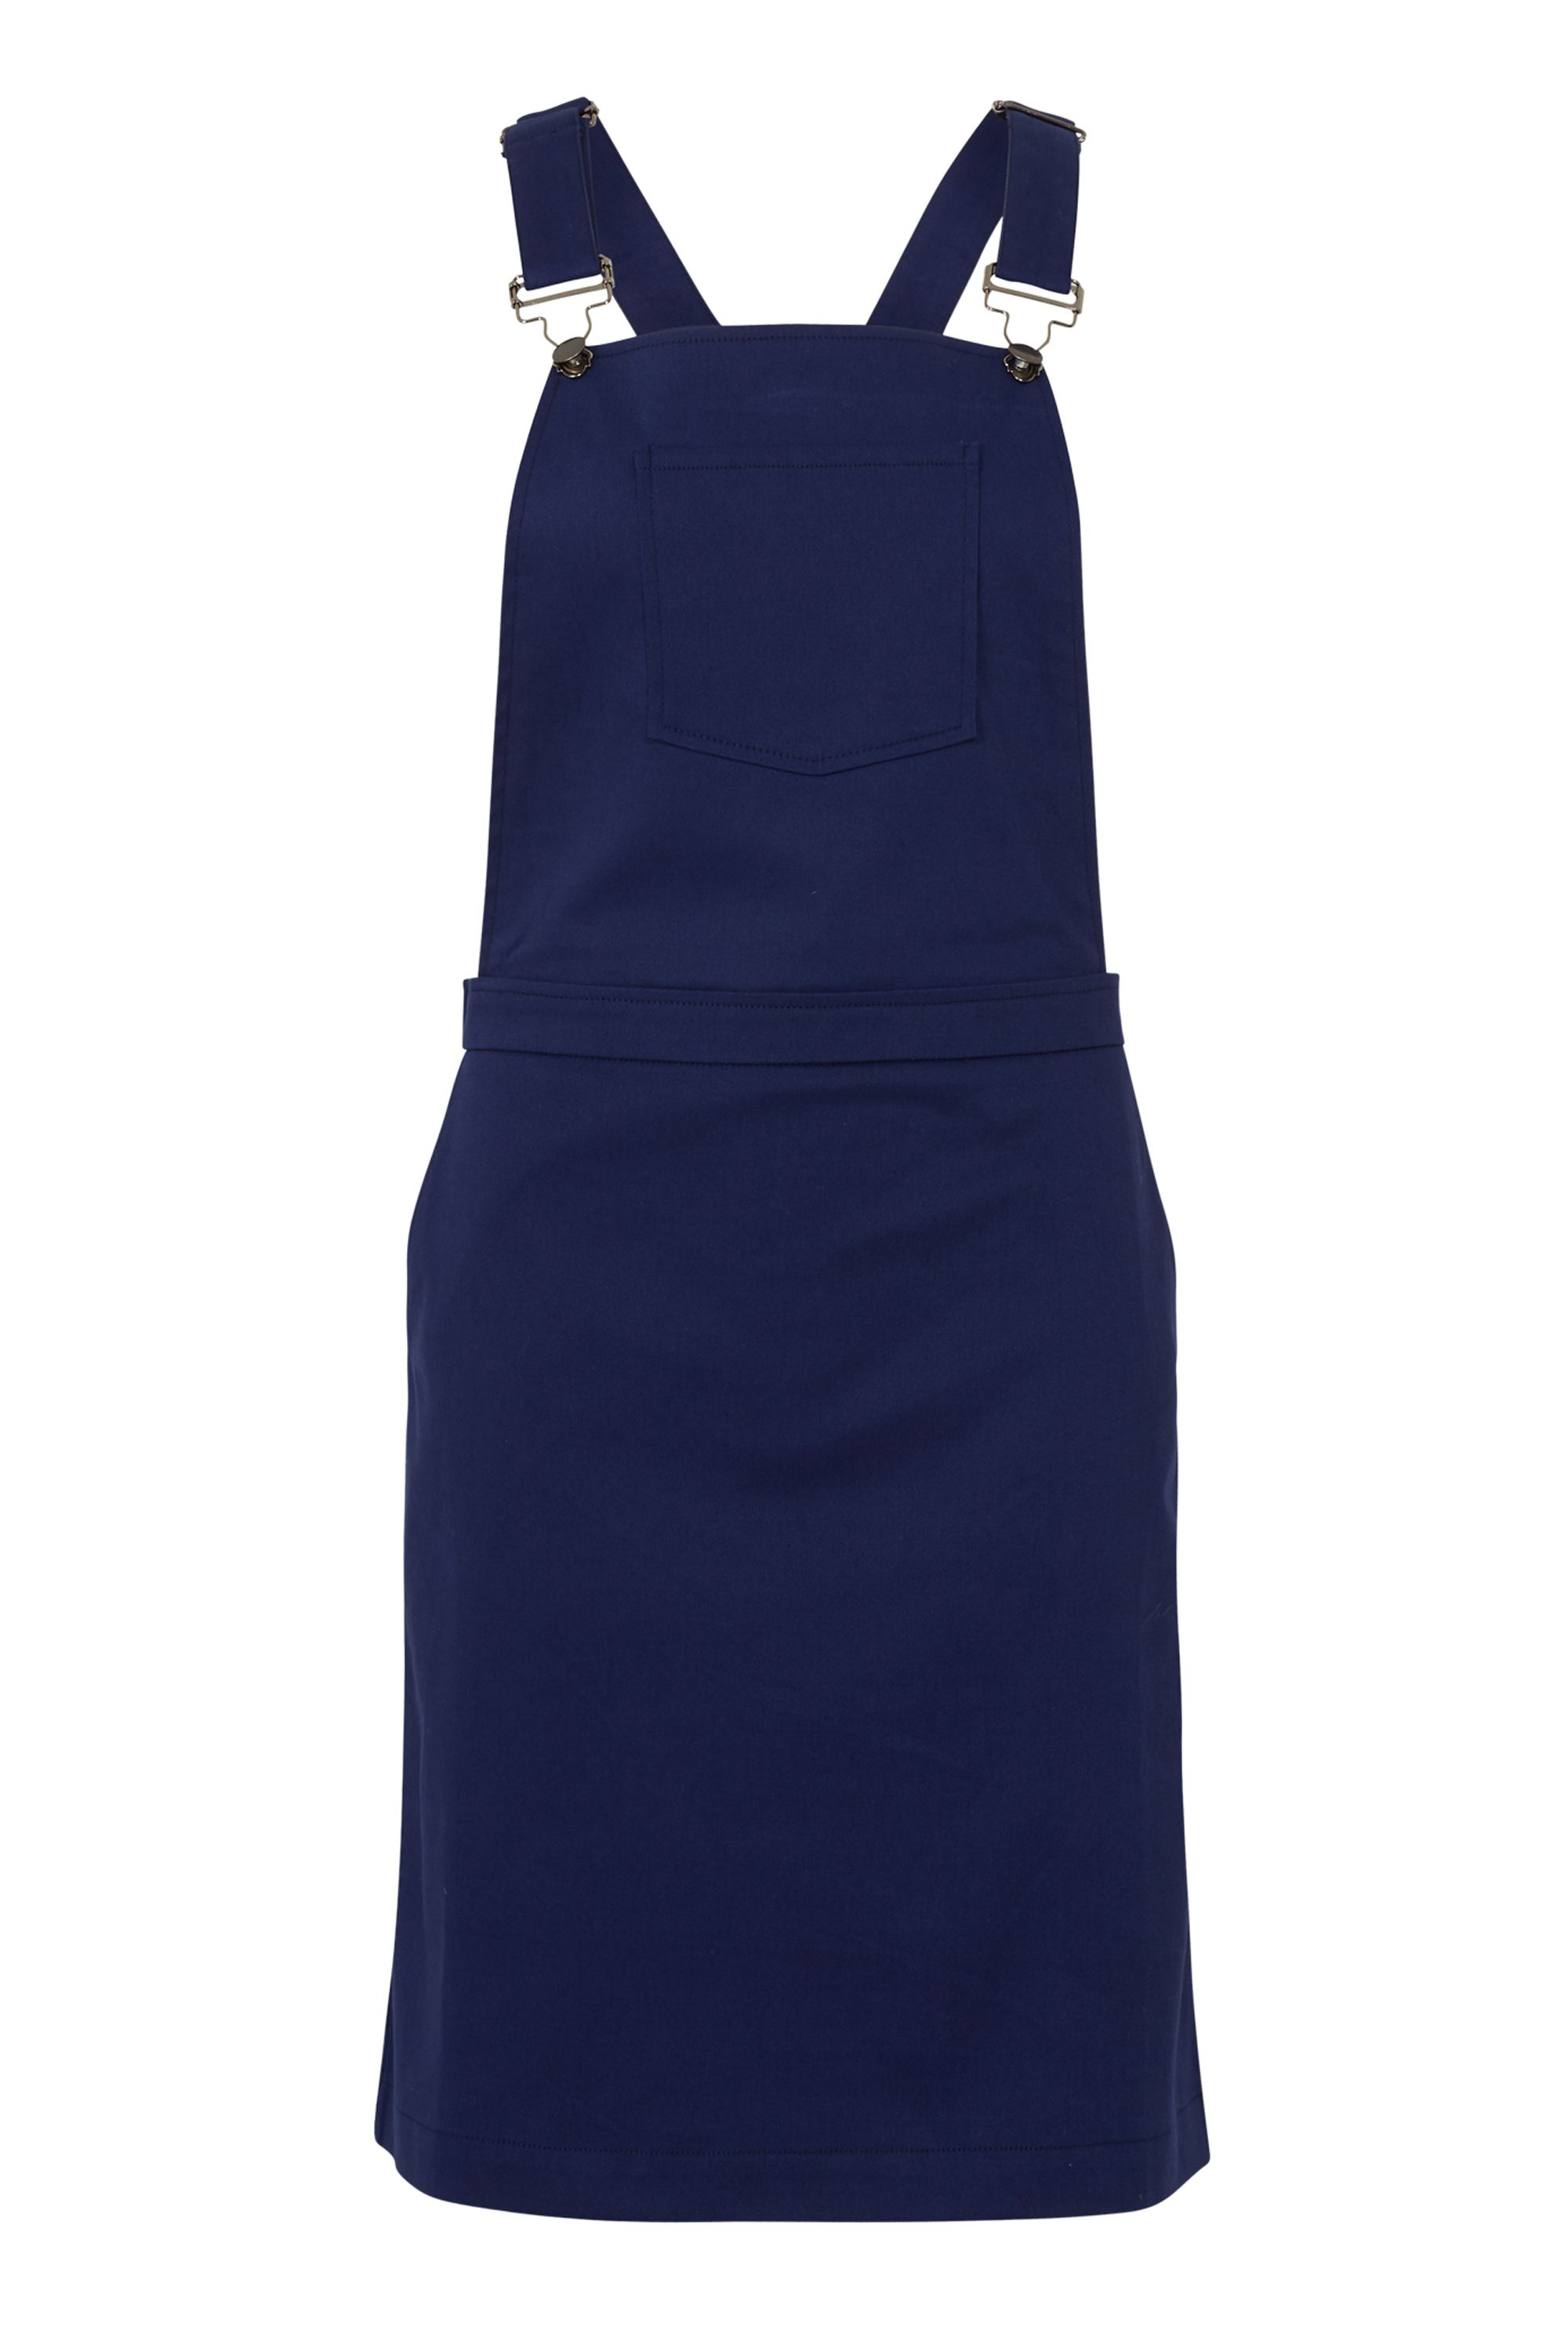 Sugarhill Boutique Toni Apron Dungaree Dress, Blue